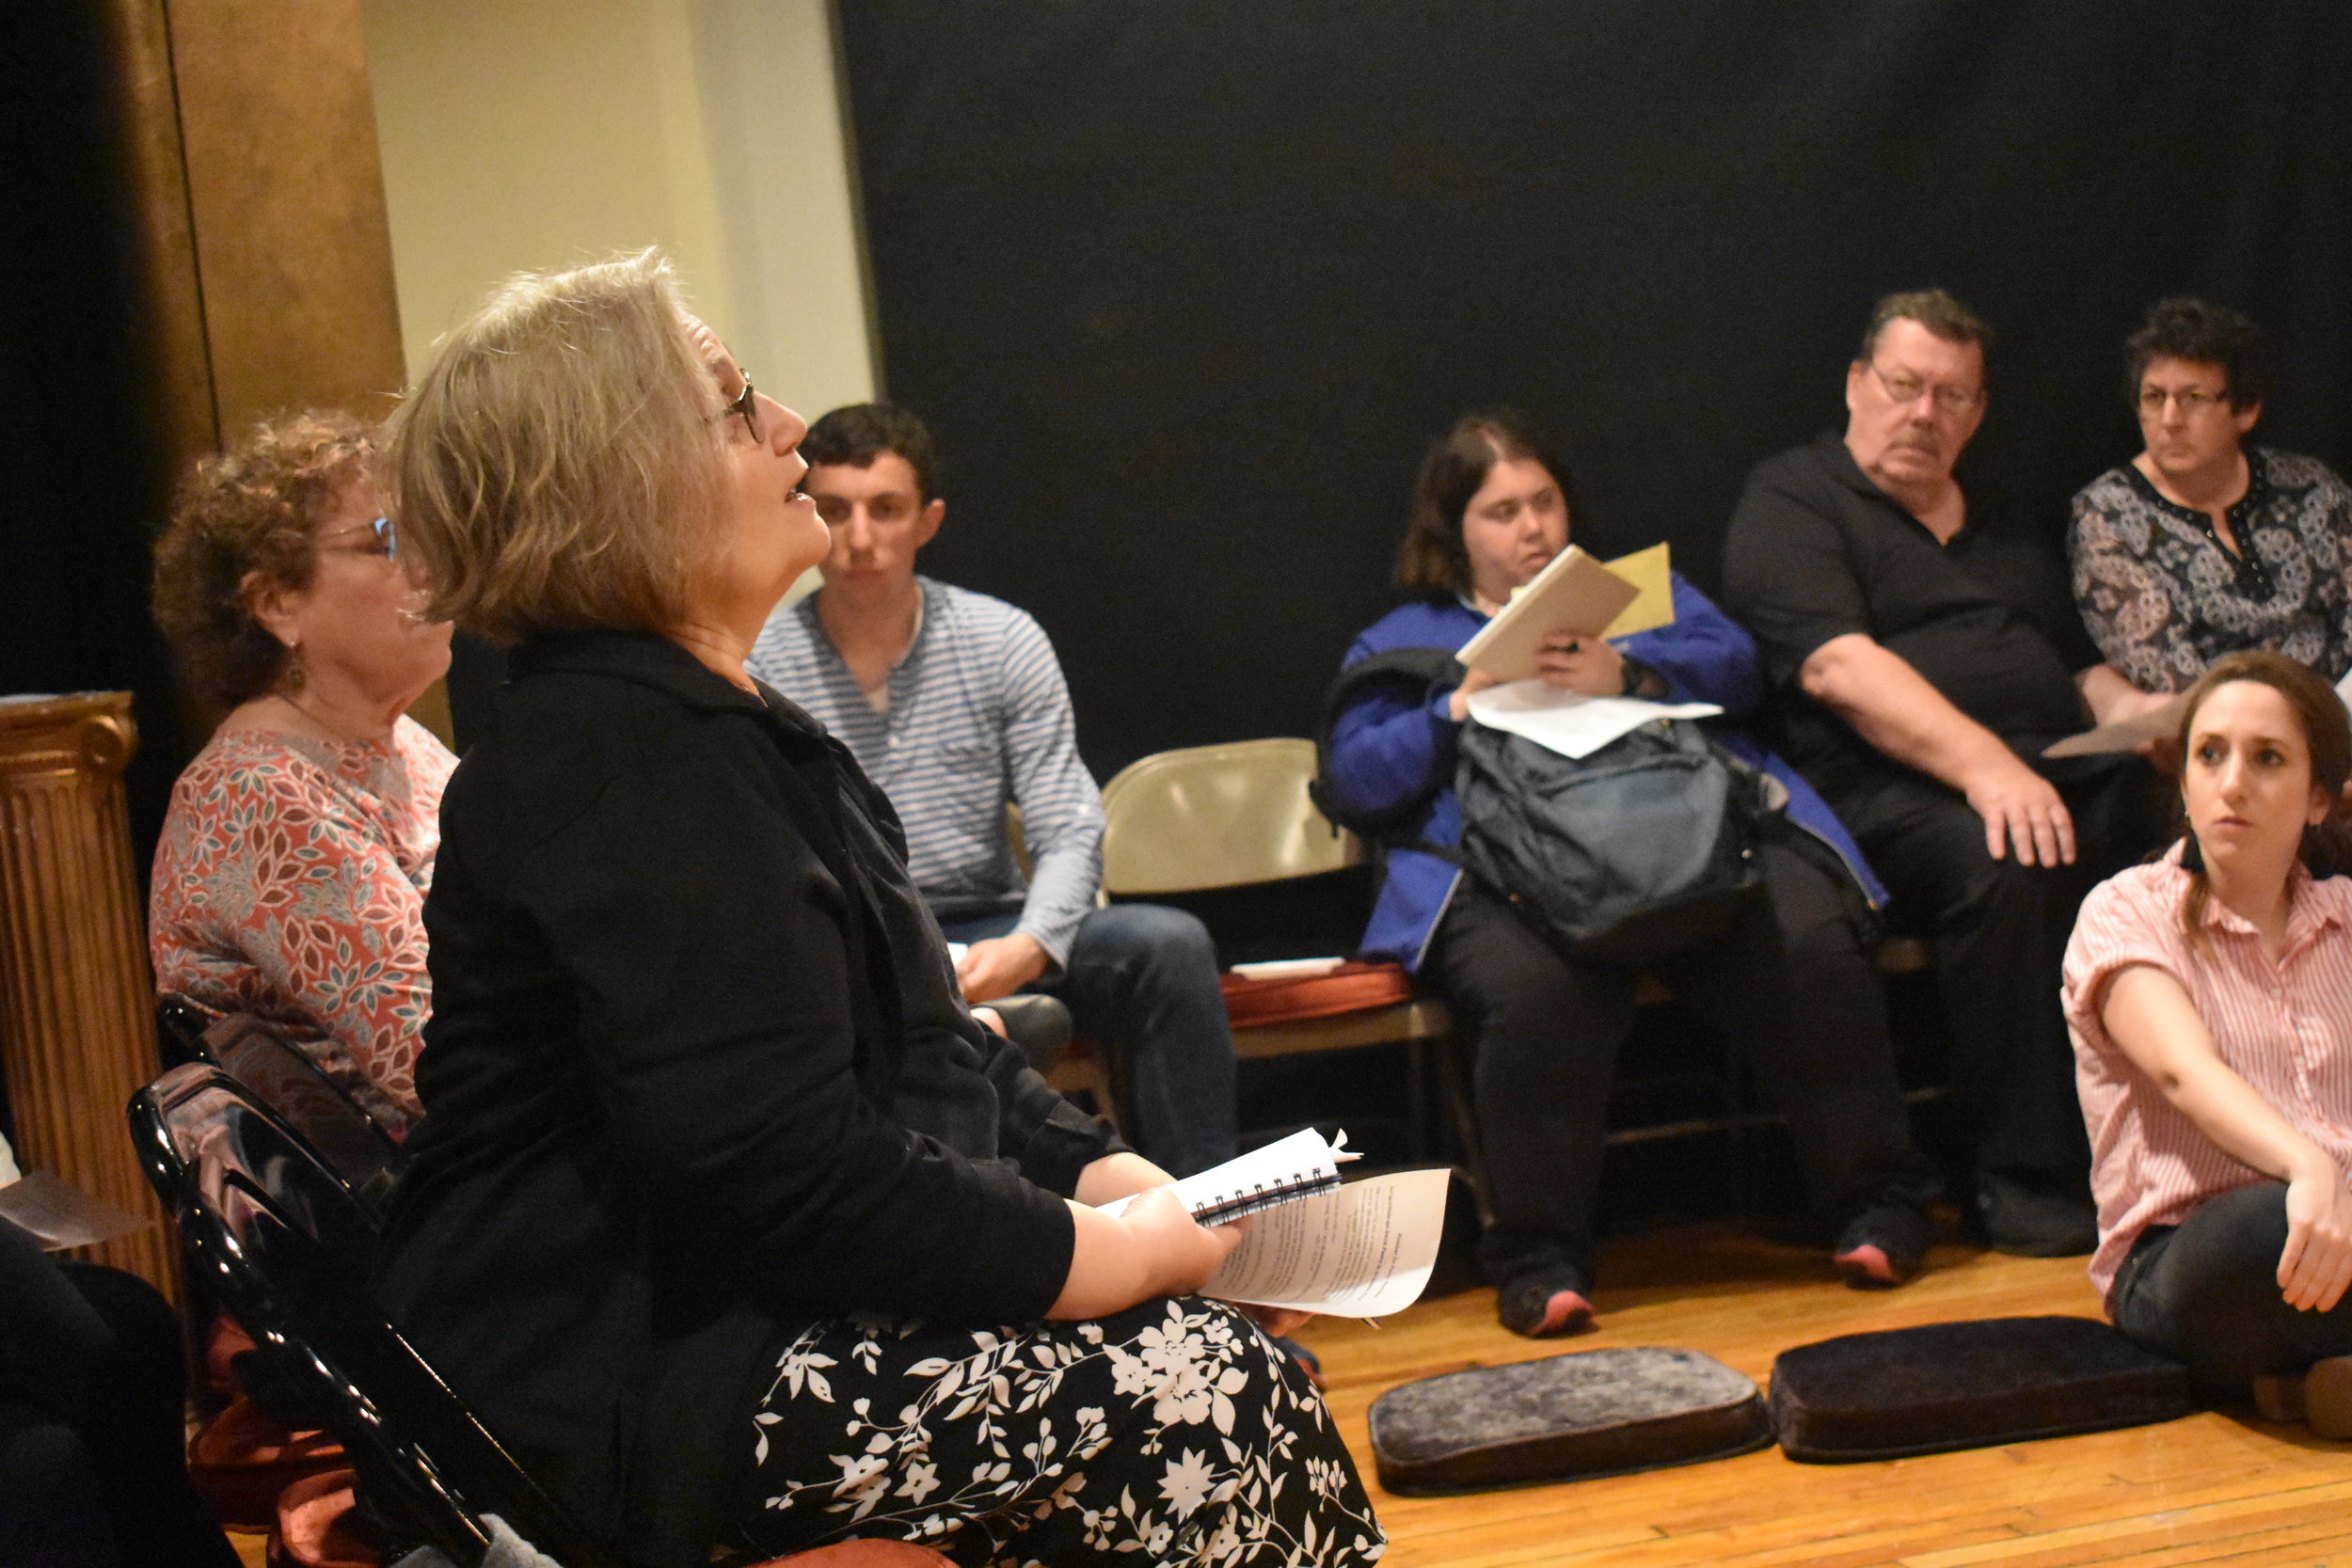 Participants share the poetry created during the medieval poetry workshop. Photo by Mollie Block